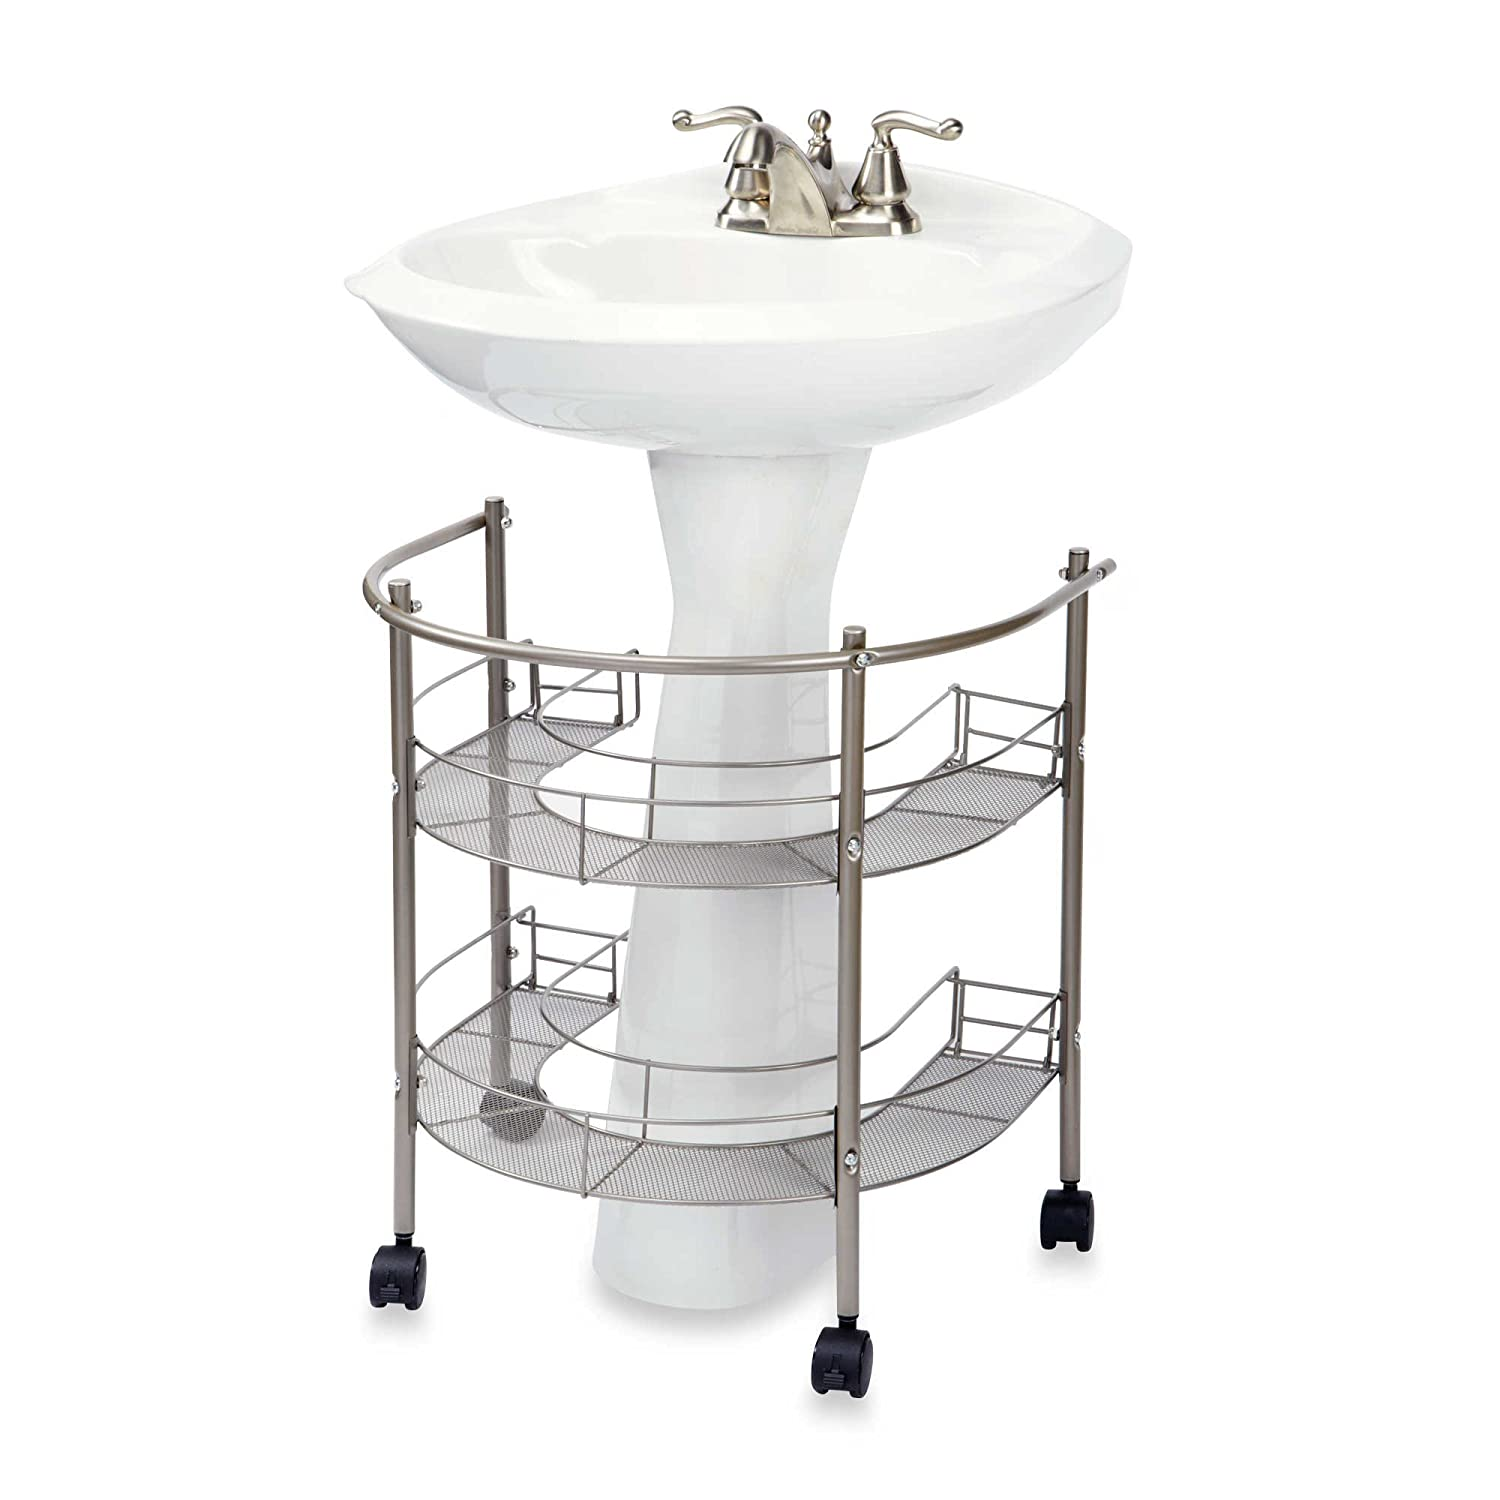 Charmant Amazon.com   Rolling Organizer For Pedestal Sink   Two Tiers Wrap Around  Storage W/ Smooth Glide Casters, Easy To Assemble, Guaranteed High Quality